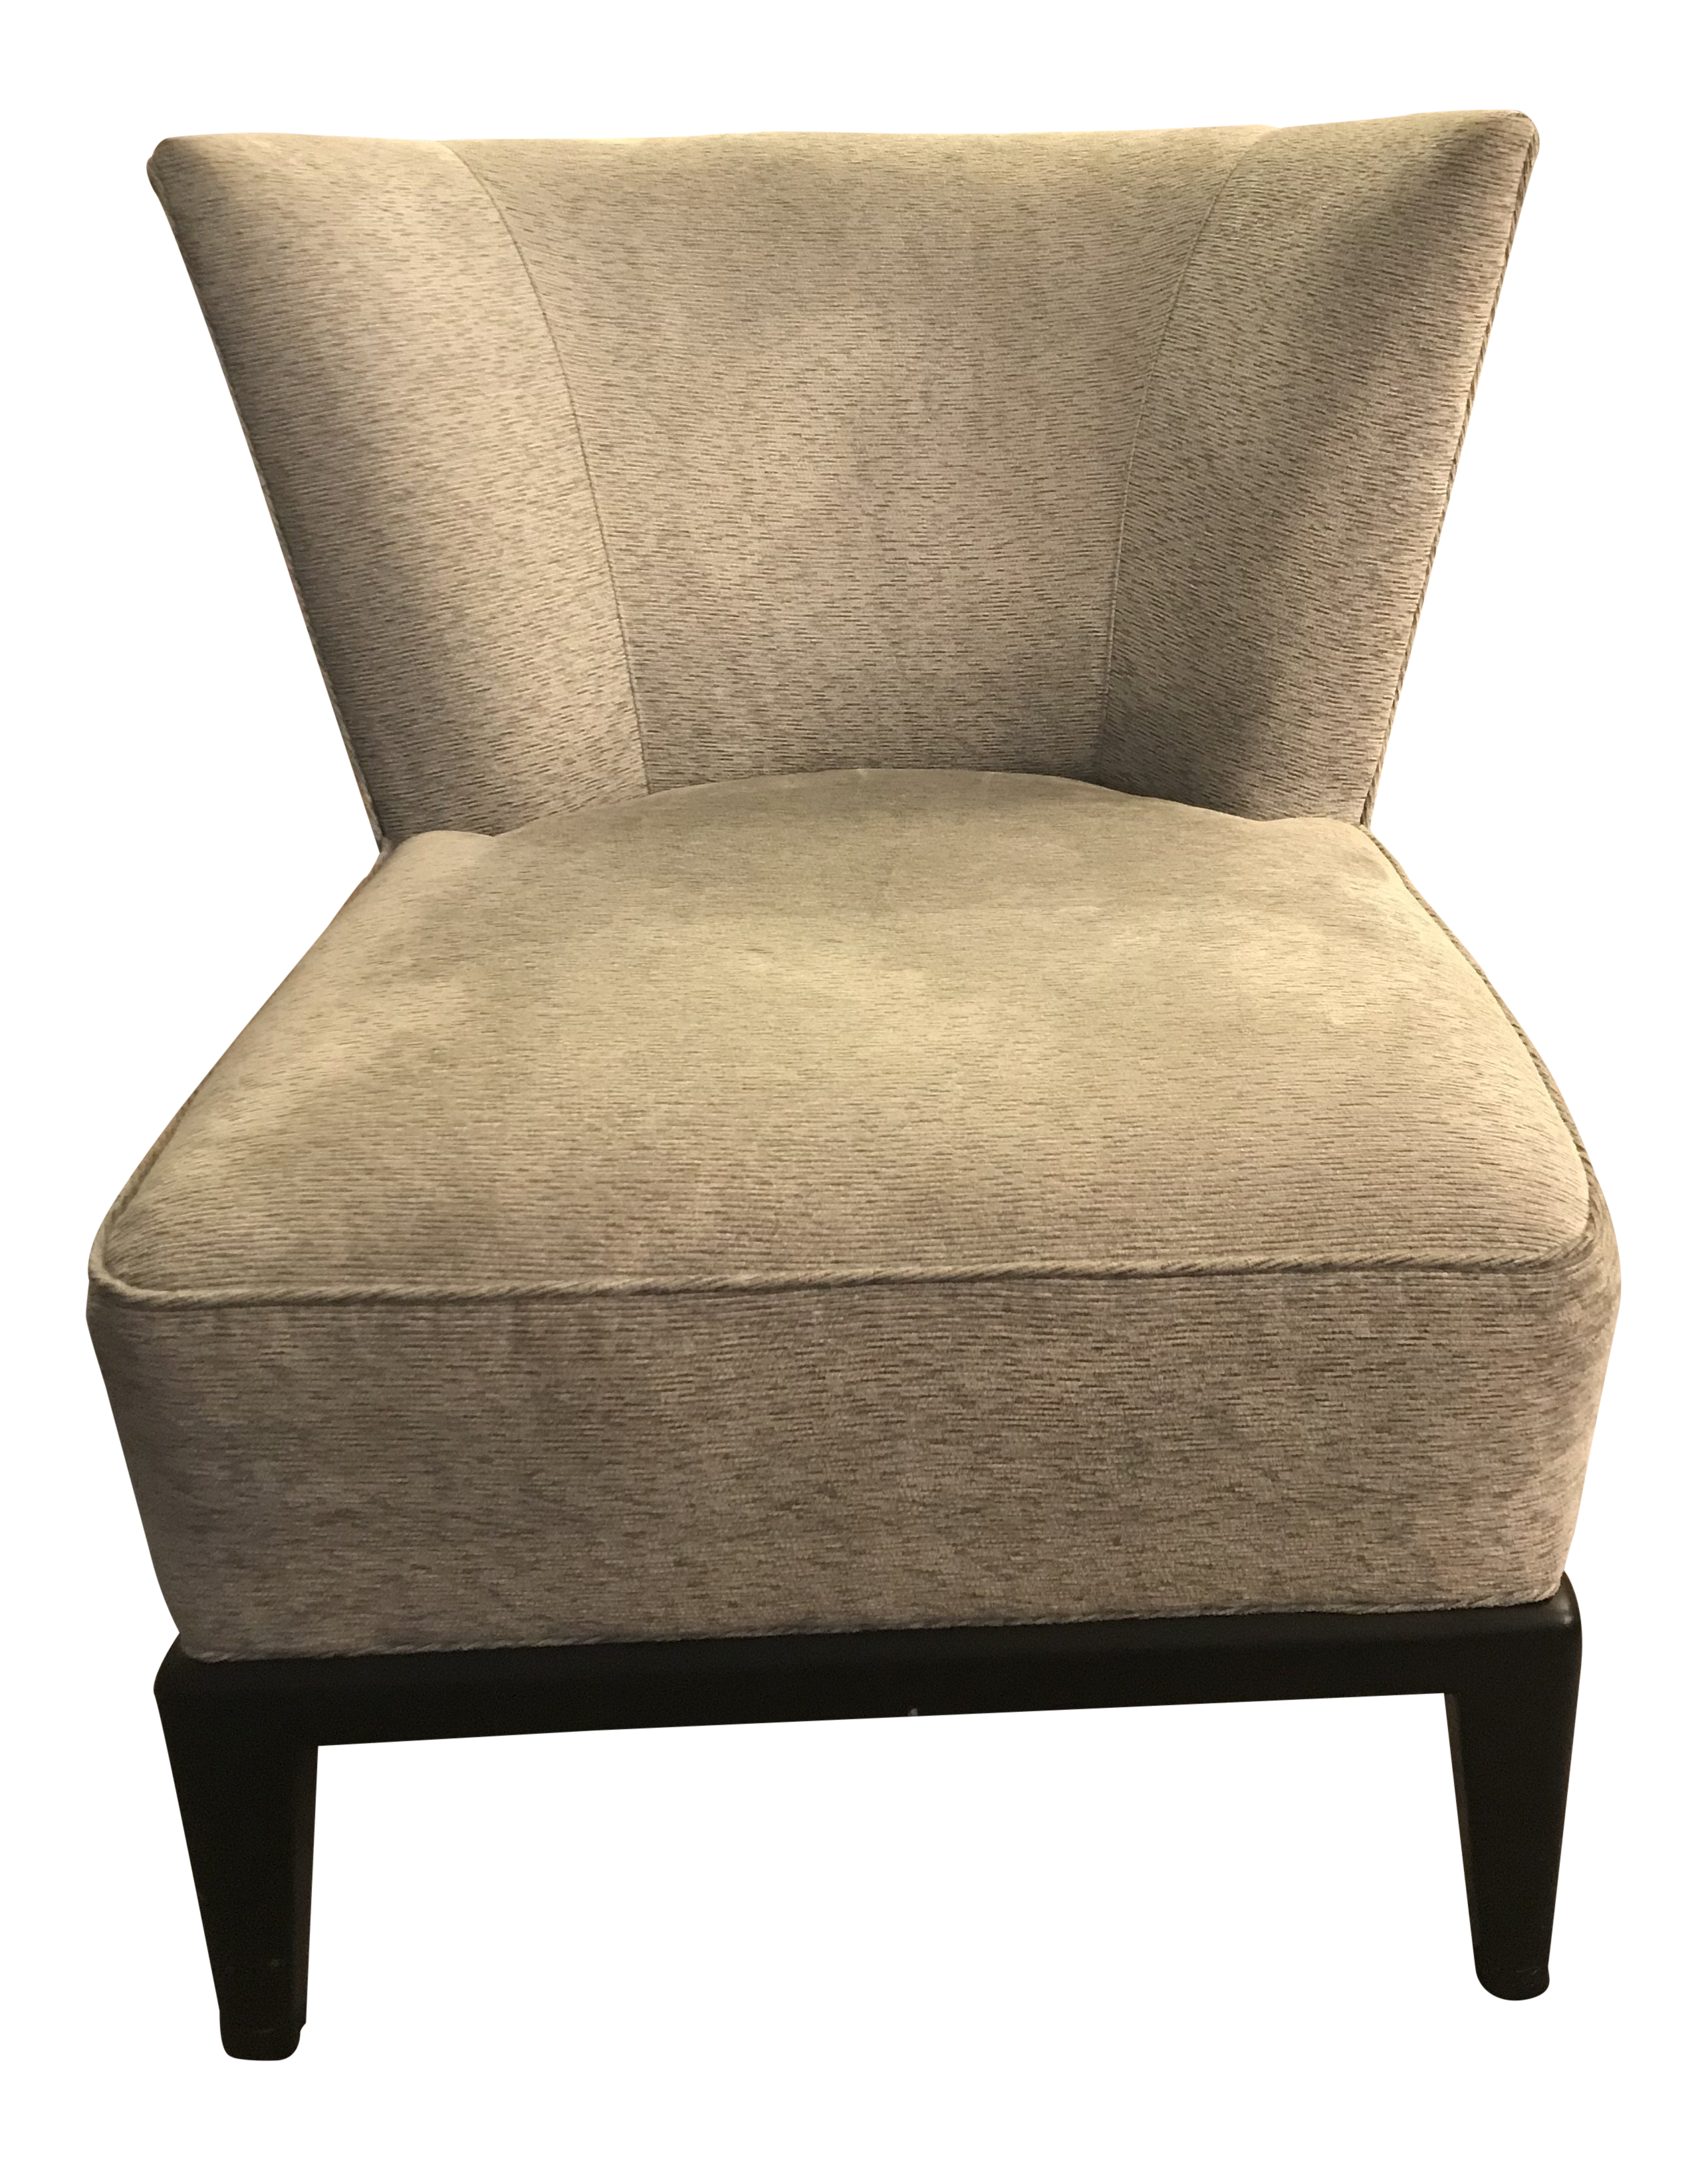 Becca stool bamboo furniture modern bamboo Desk Chair Mitchell Gold Bob Williams Gray Upholstered Accent Chair Padstyle Gently Used Mitchell Gold Bob Williams Furniture Up To 70 Off